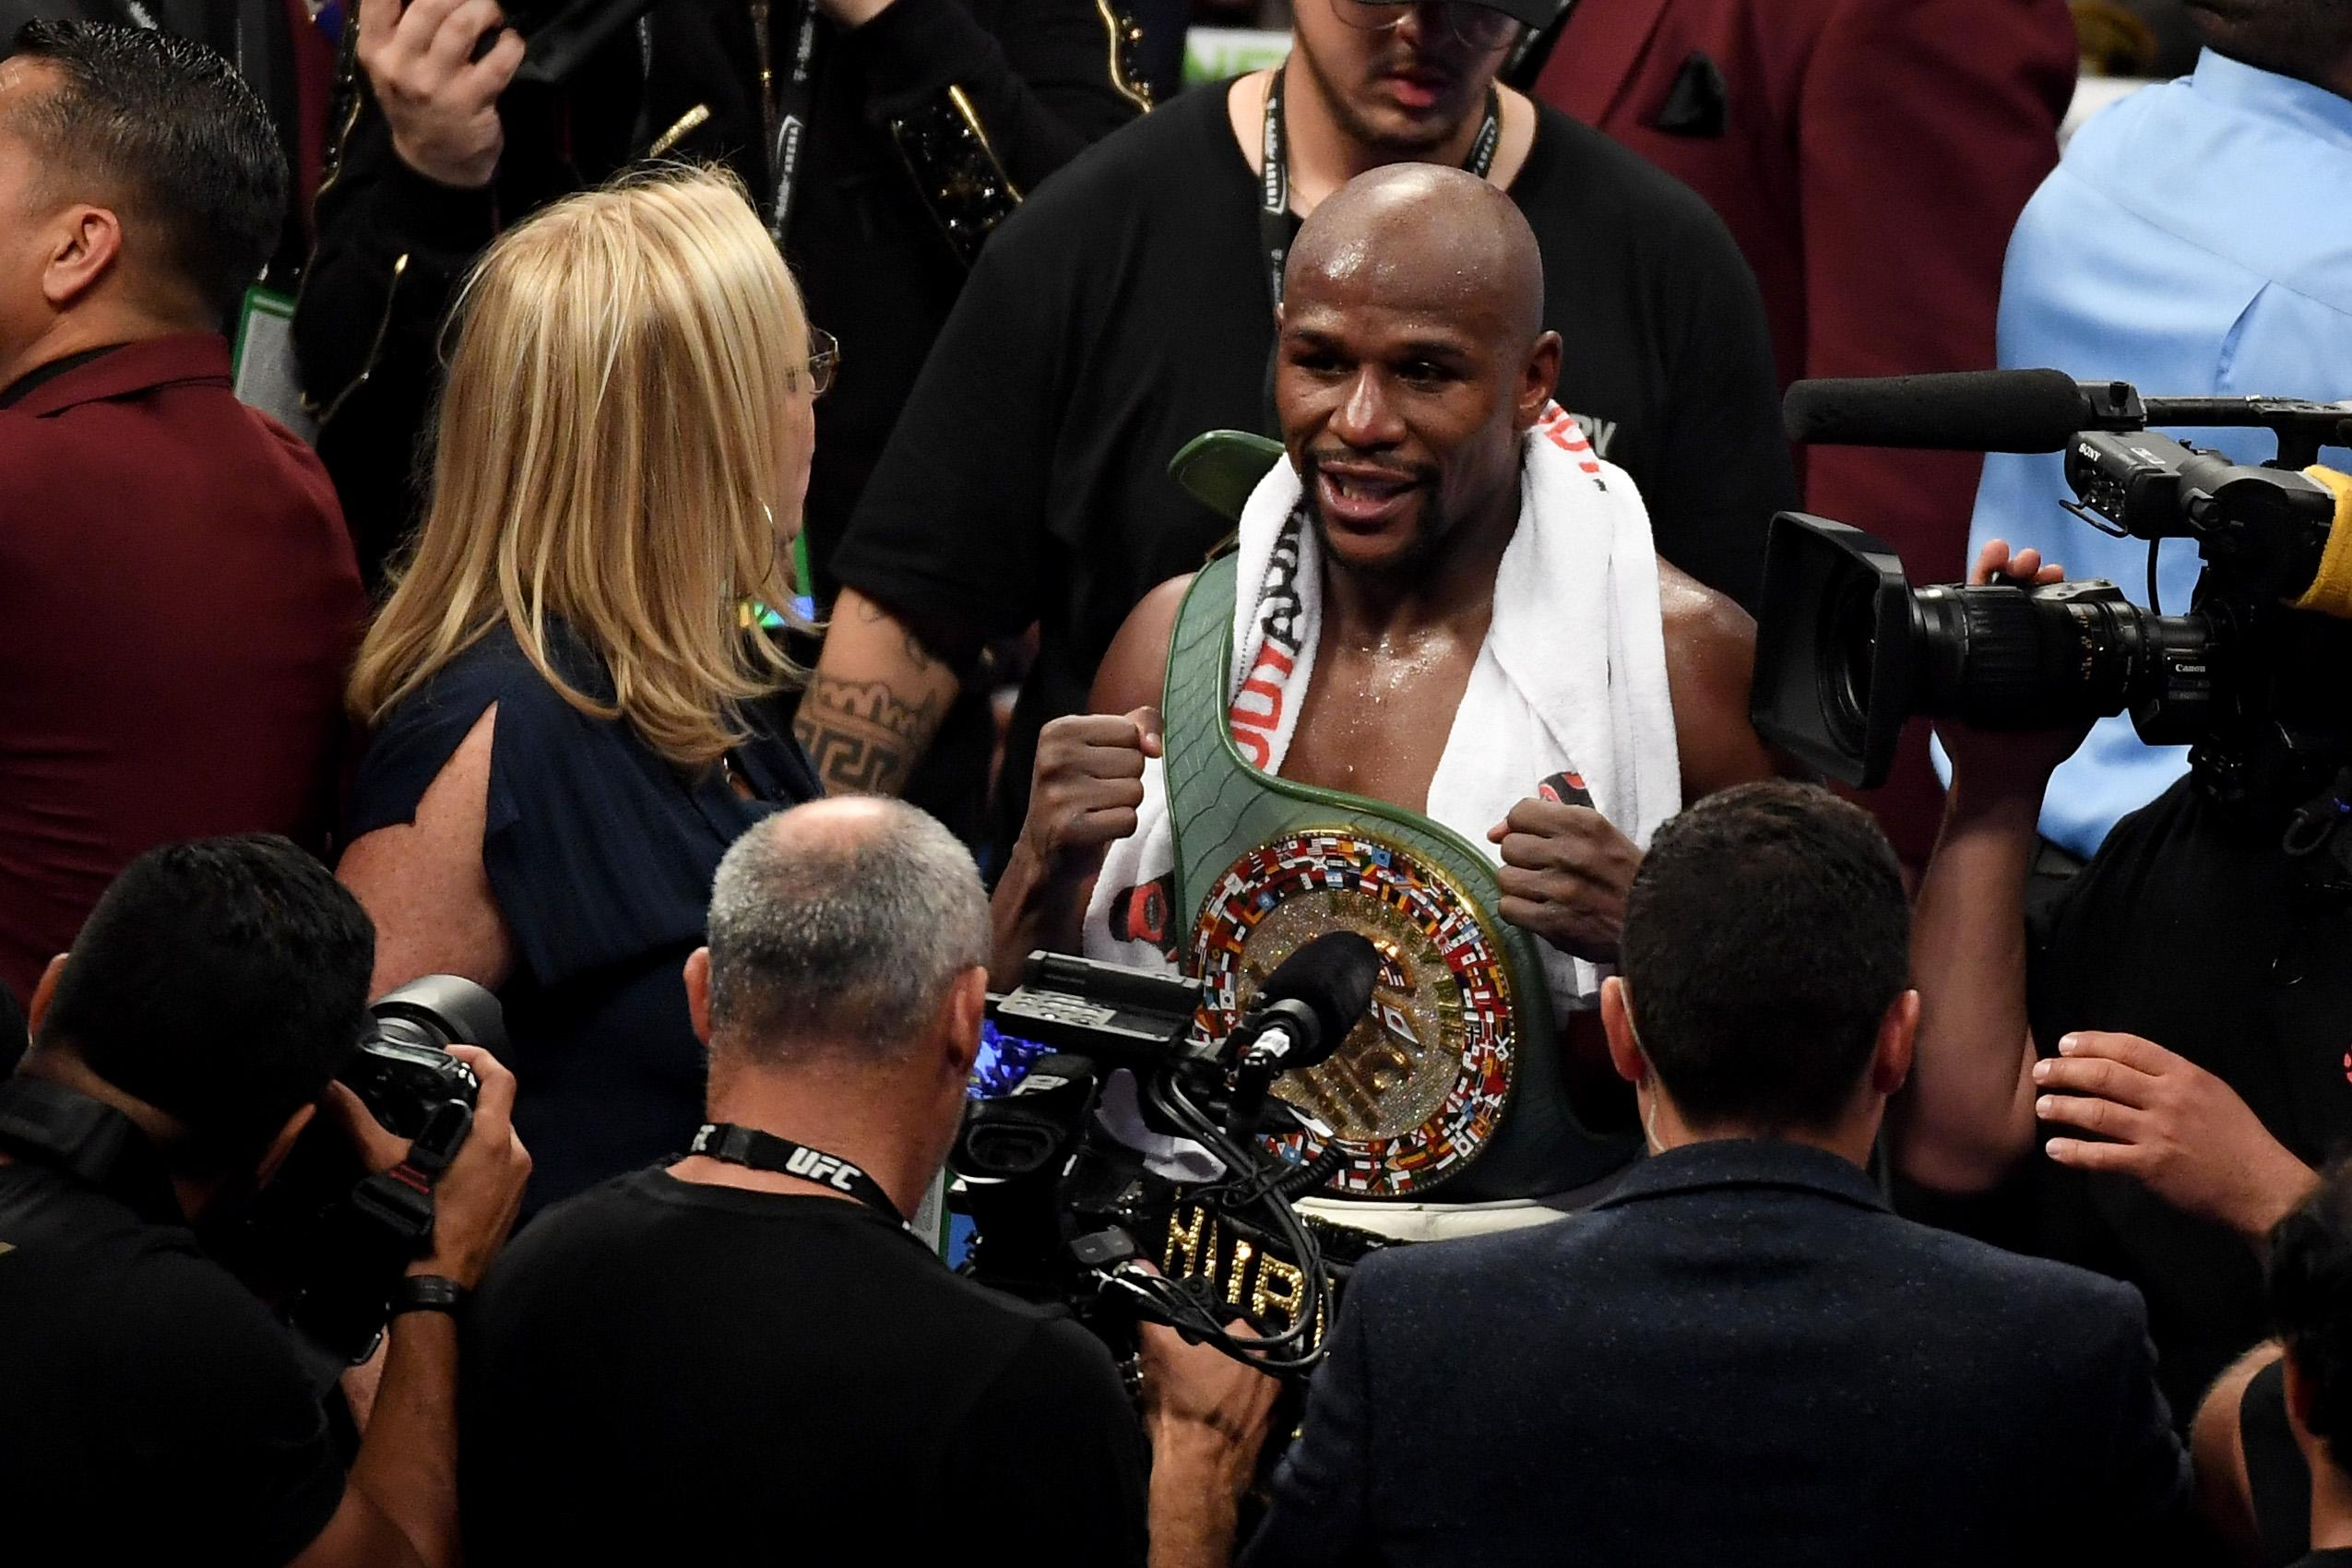 What is #MeToo? Floyd Mayweather thinks it's about something different